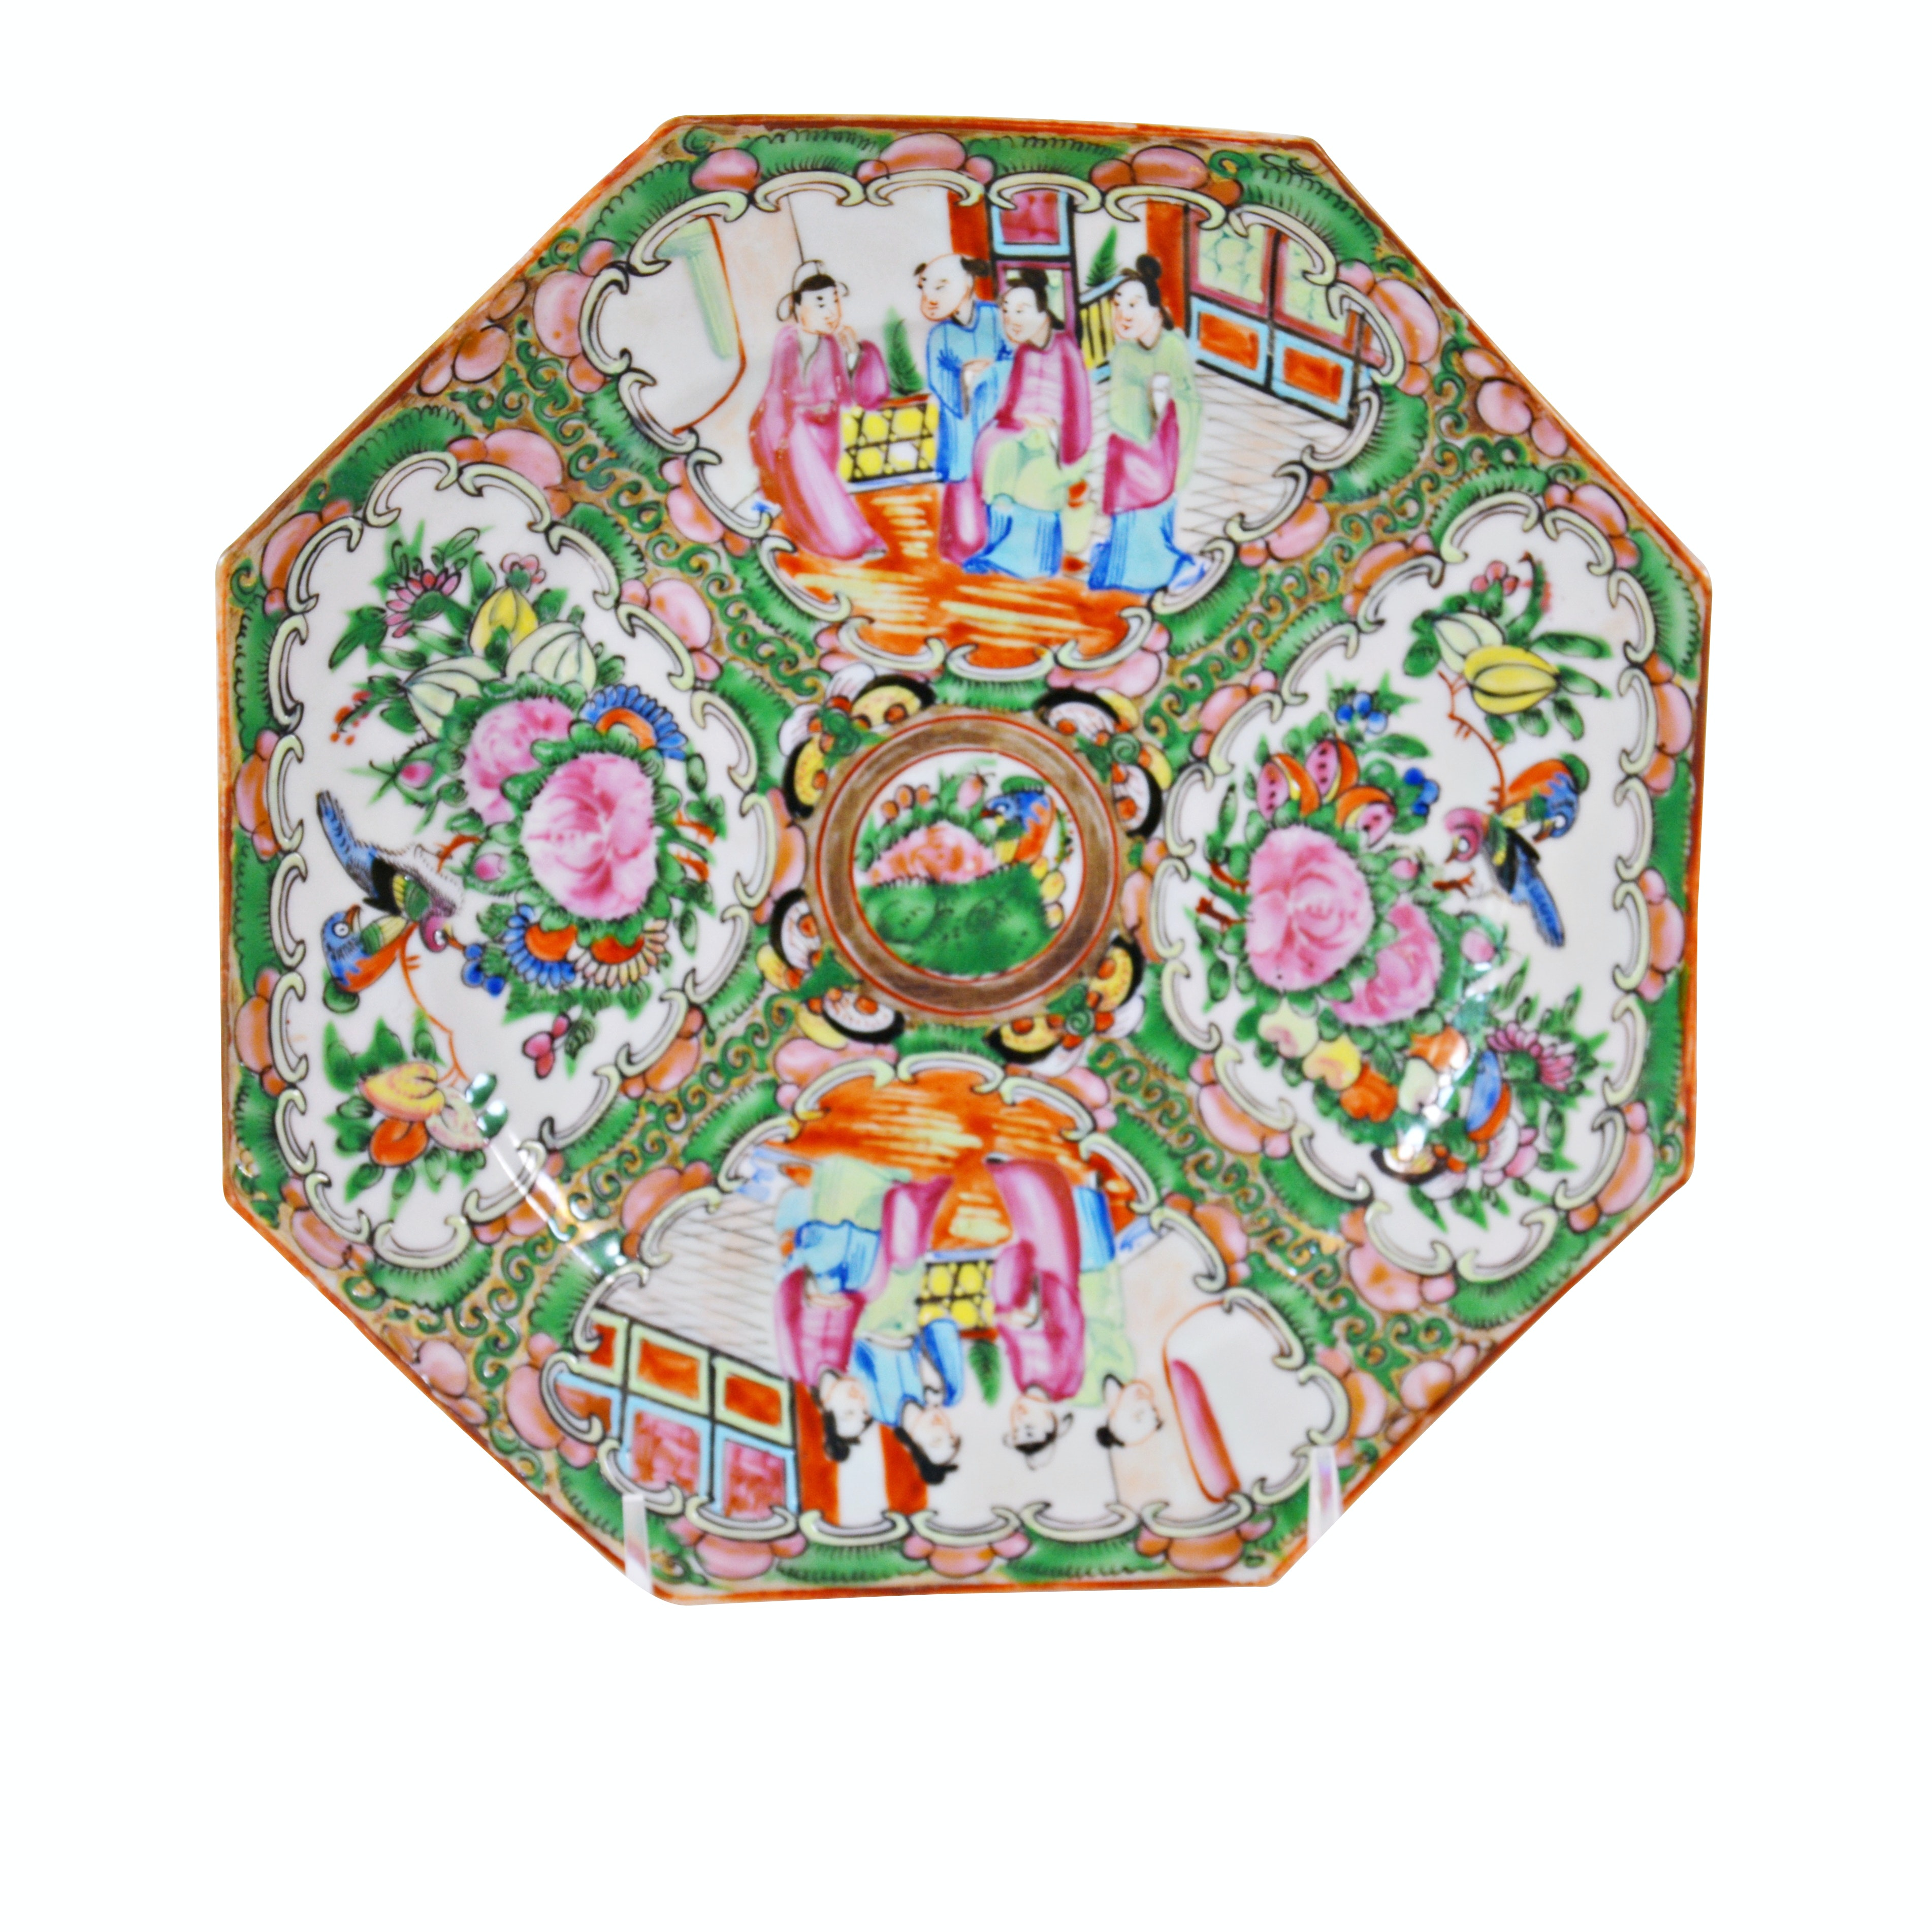 Chinese Rose Medallion Porcelain Octagonal Plate, Late 19th Century